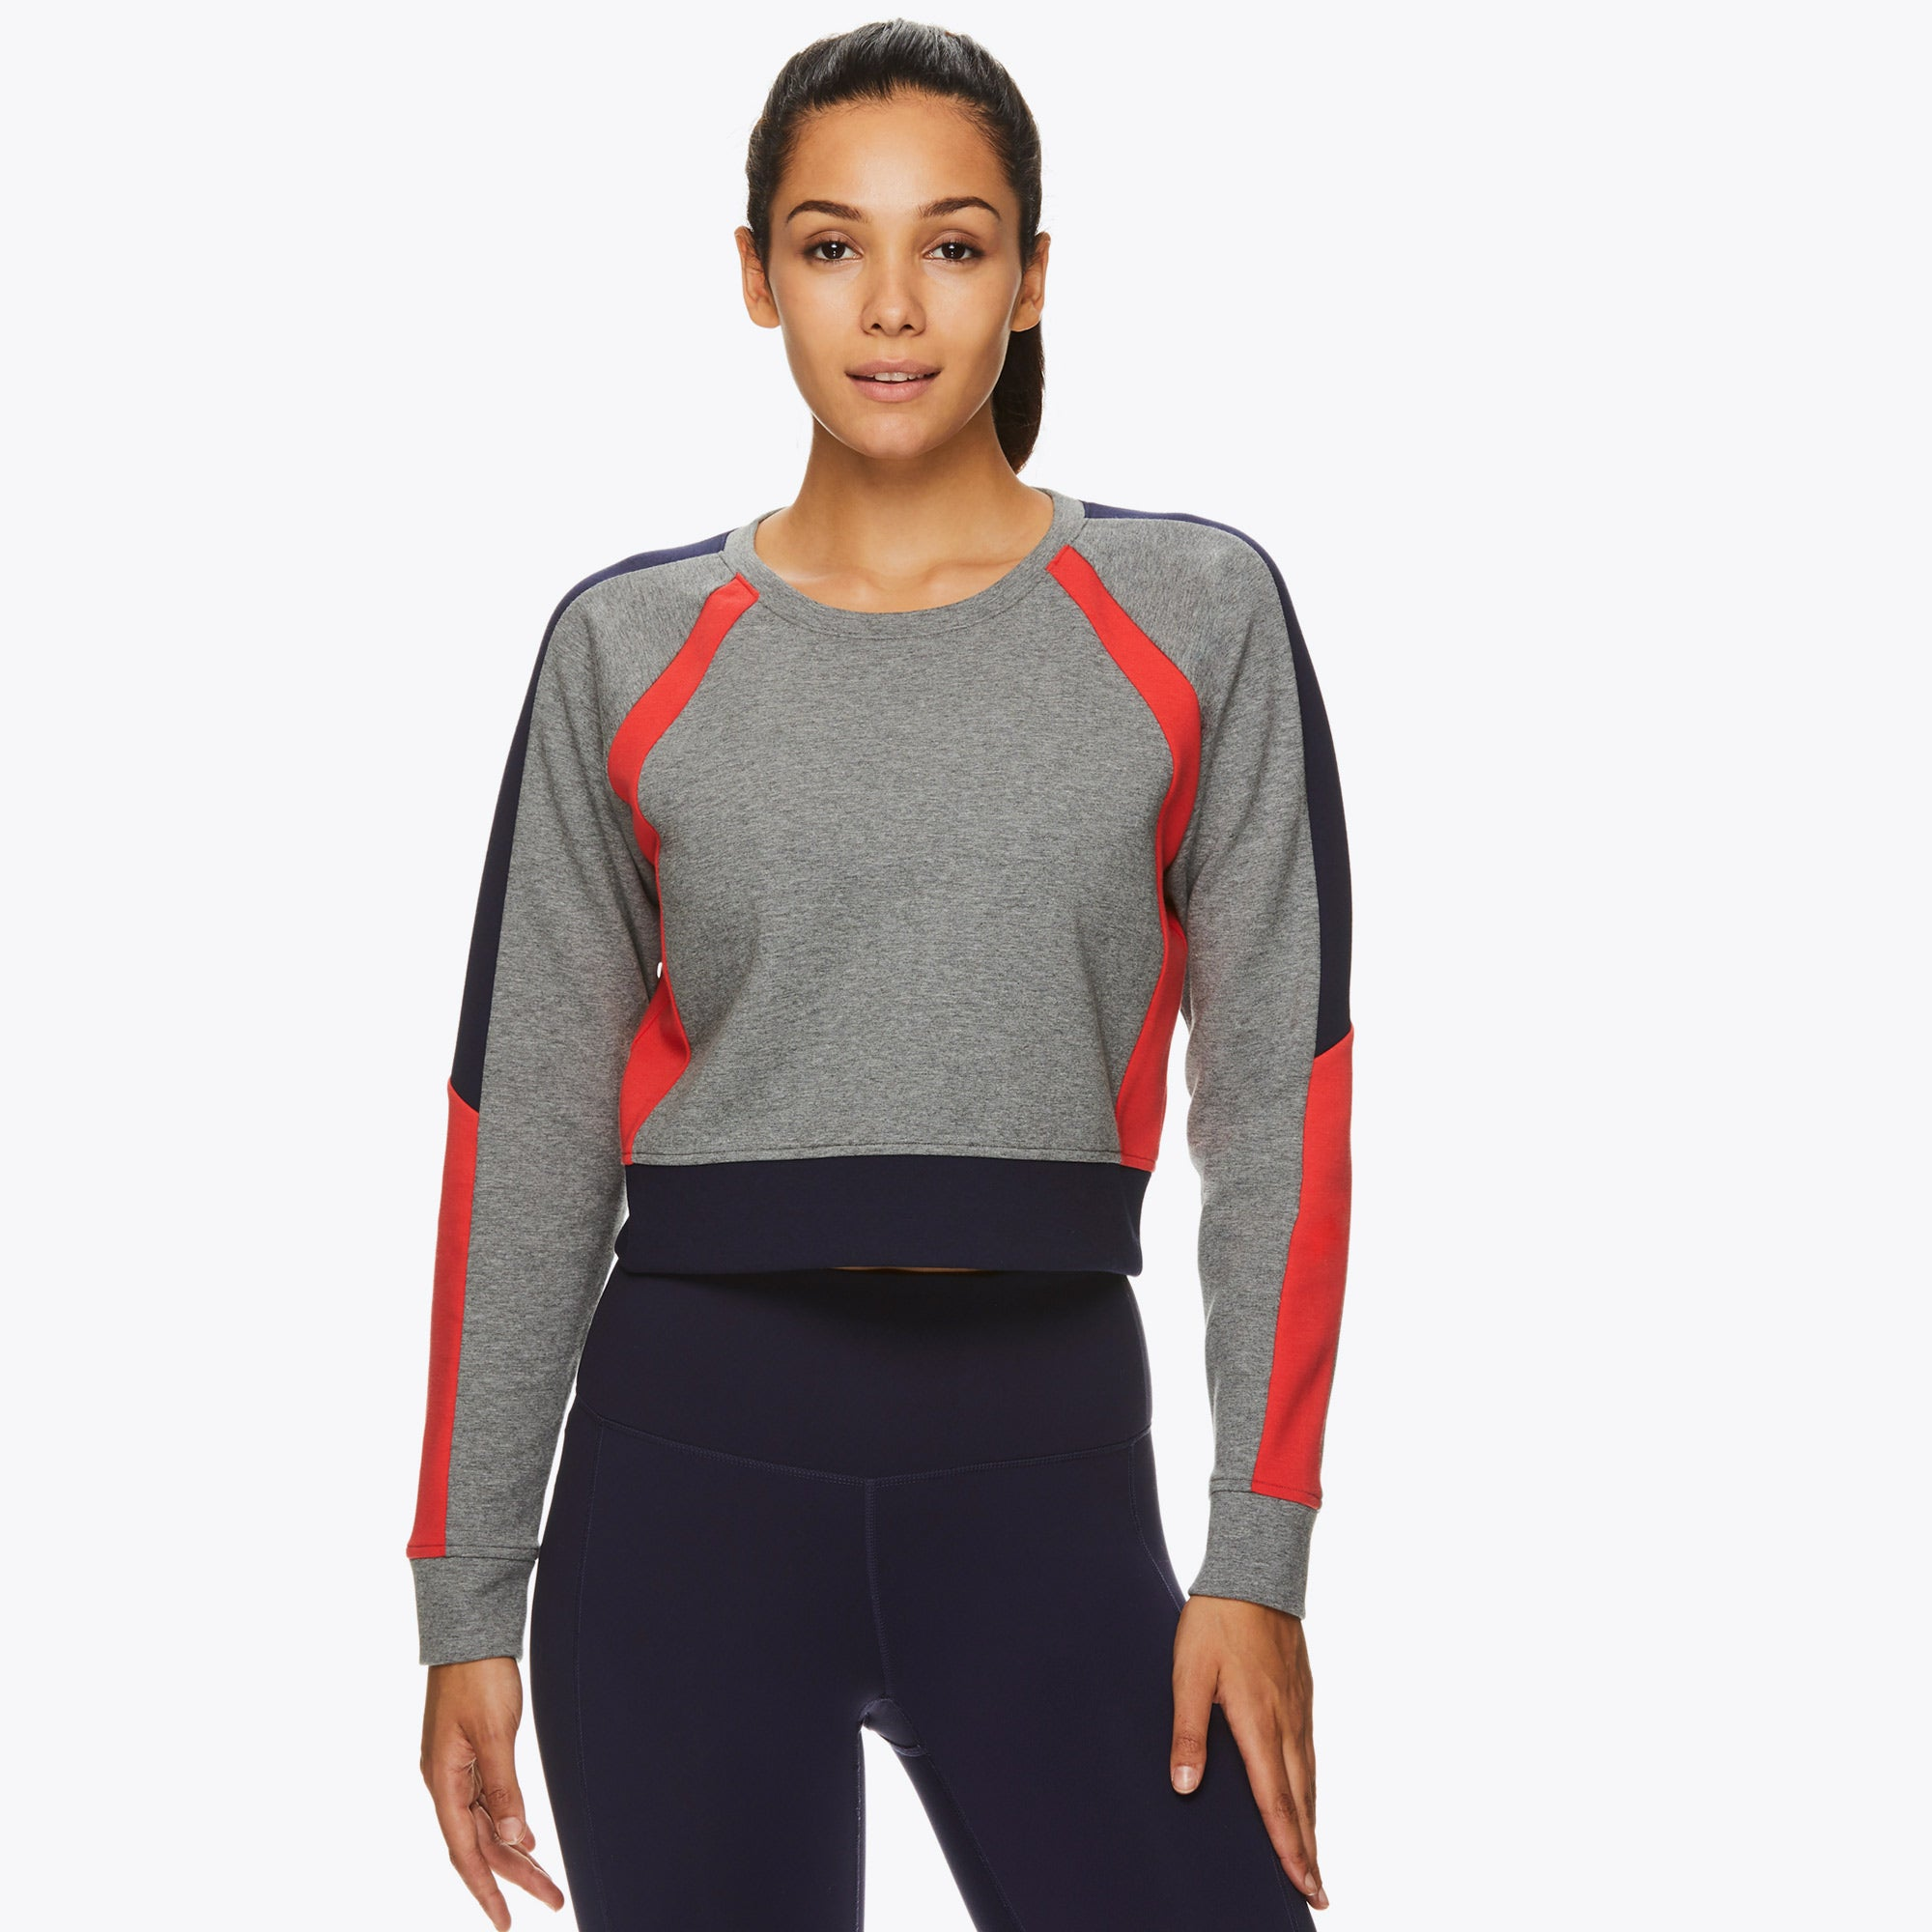 Image of Gaiam X Jessica Biel Tribeca Sweatshirt